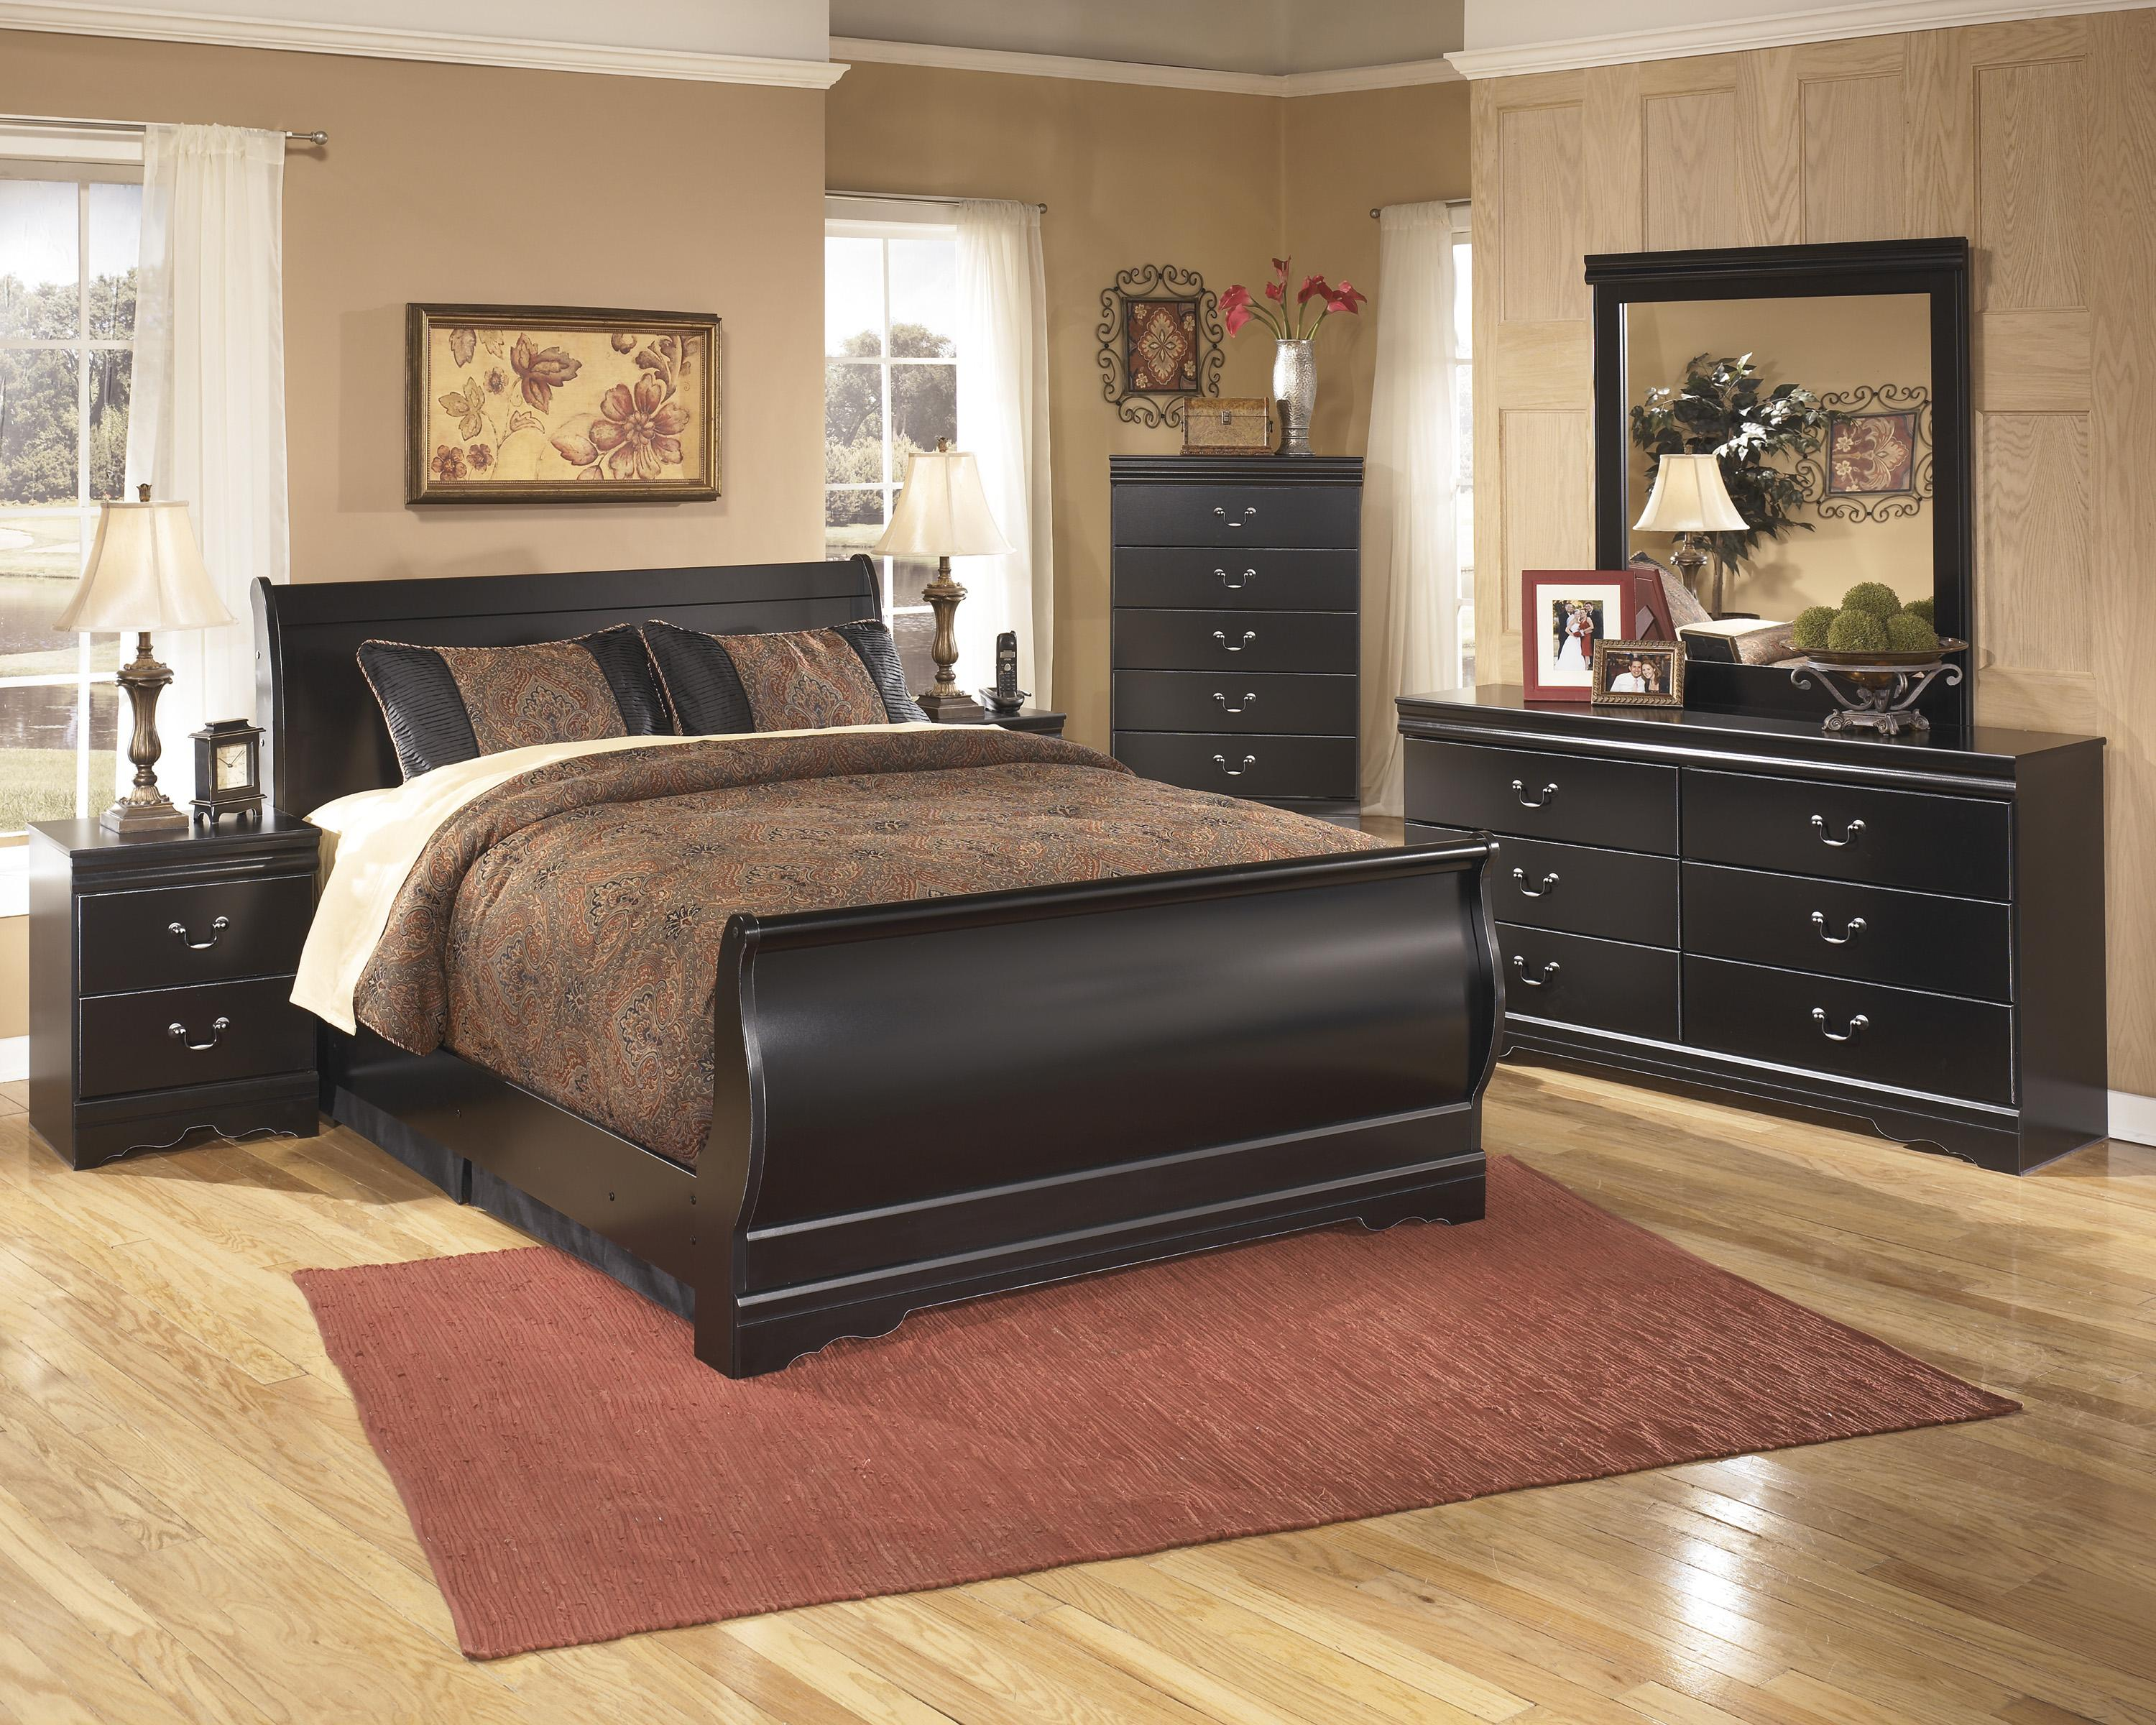 Huey Vineyard Full Bedroom Group by Signature Design by Ashley at Northeast Factory Direct